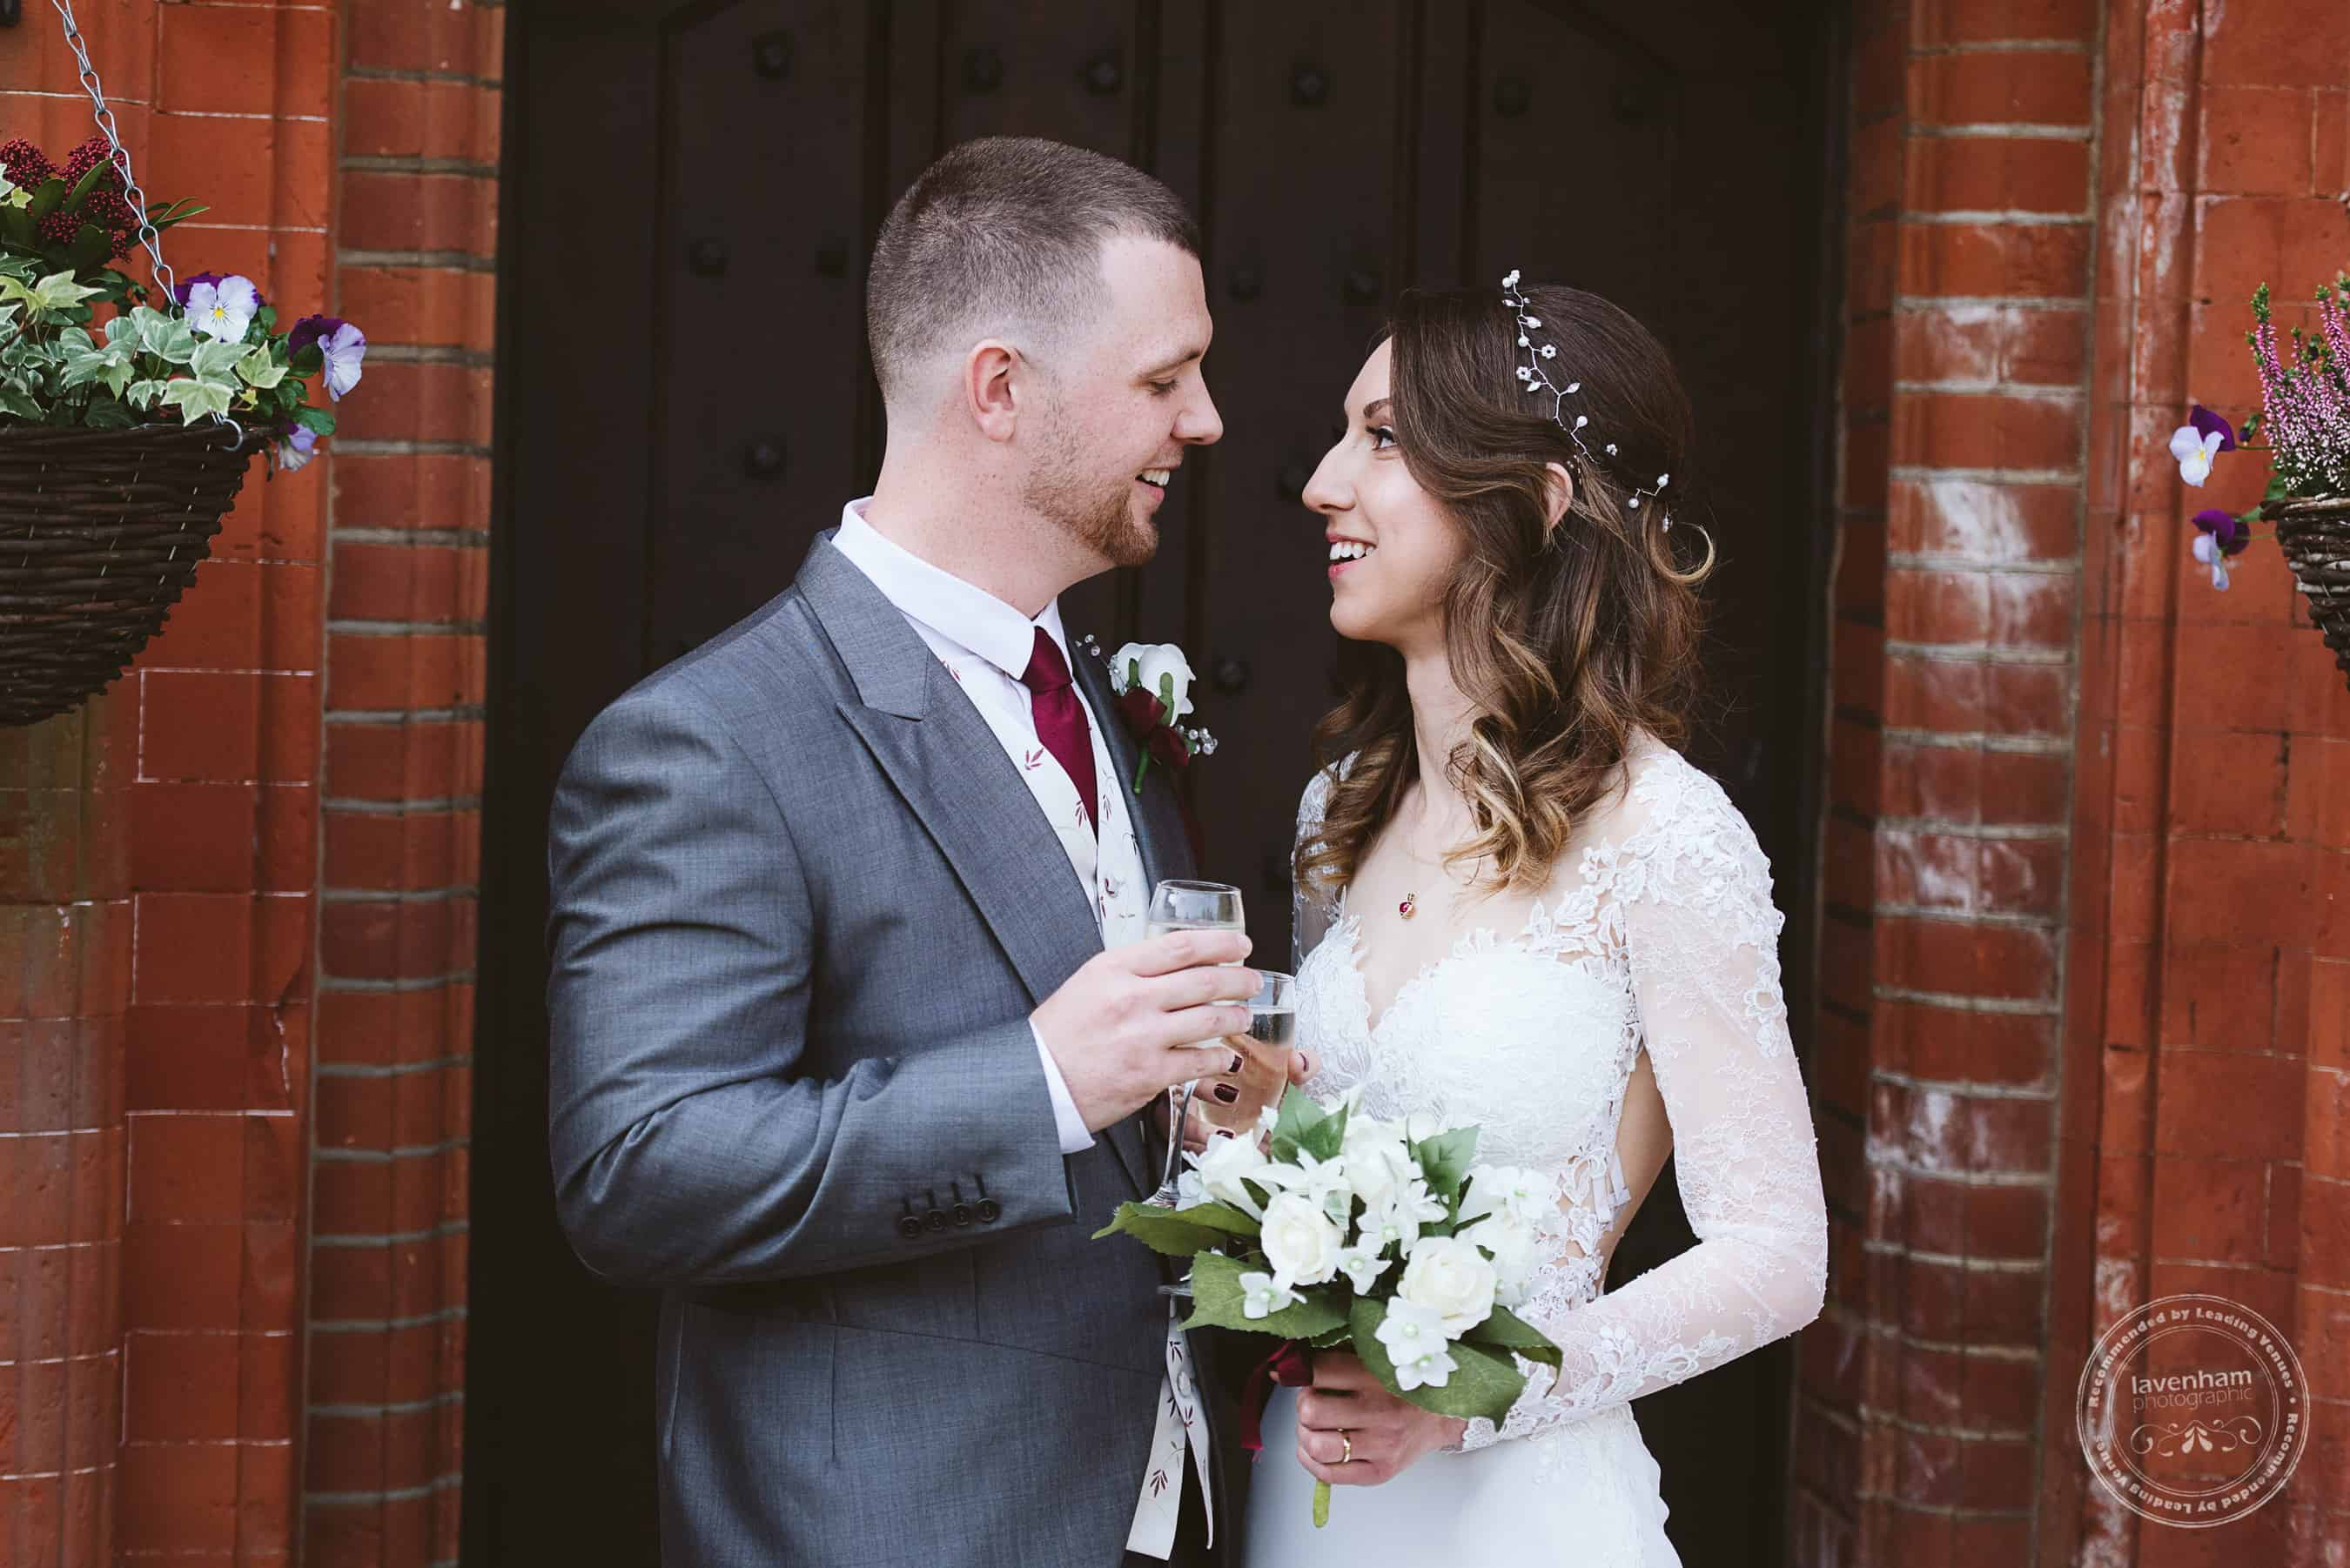 041118 Woodhall Manor Wedding Photography by Lavenham Photographic 047